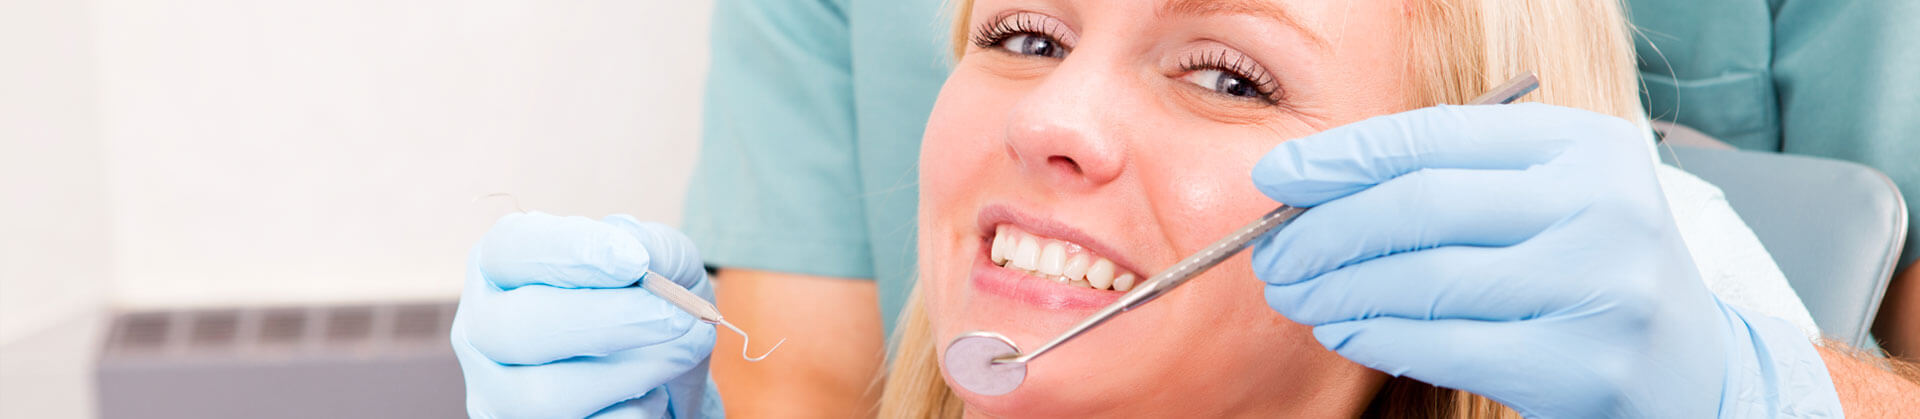 Cropped view of smiling woman getting dental treatment